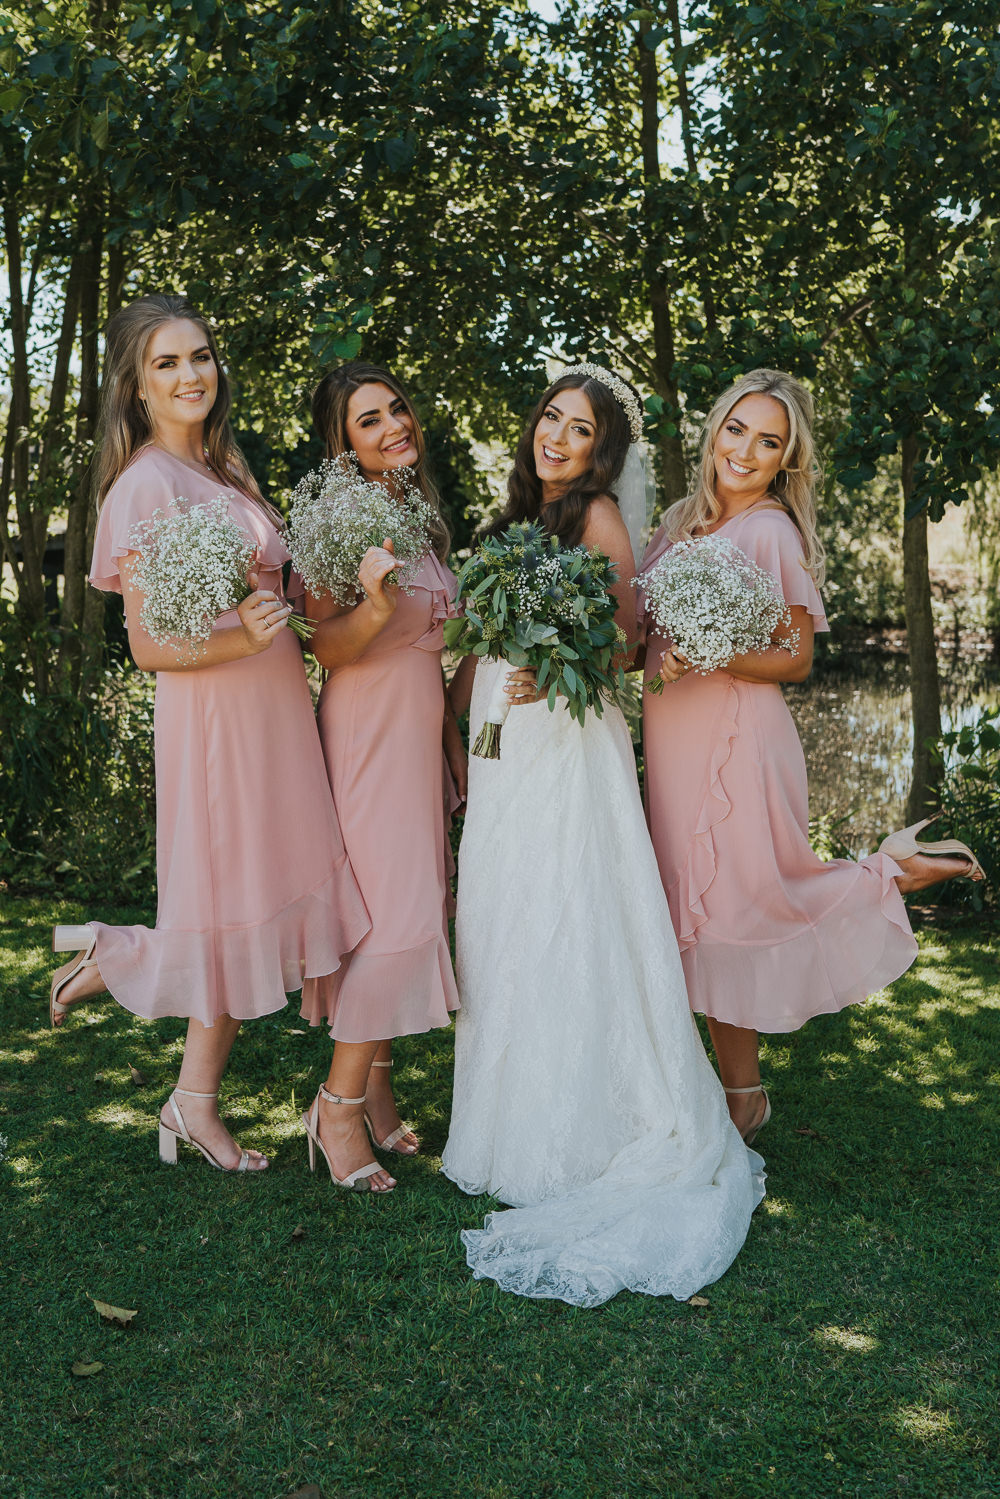 Intimate Outdoor Natural Relaxed Laid Back Summer Bride Blush Pink Bridesmaids Gypsophila White Green Bouquet | Prested Hall Wedding Grace Elizabeth Photography